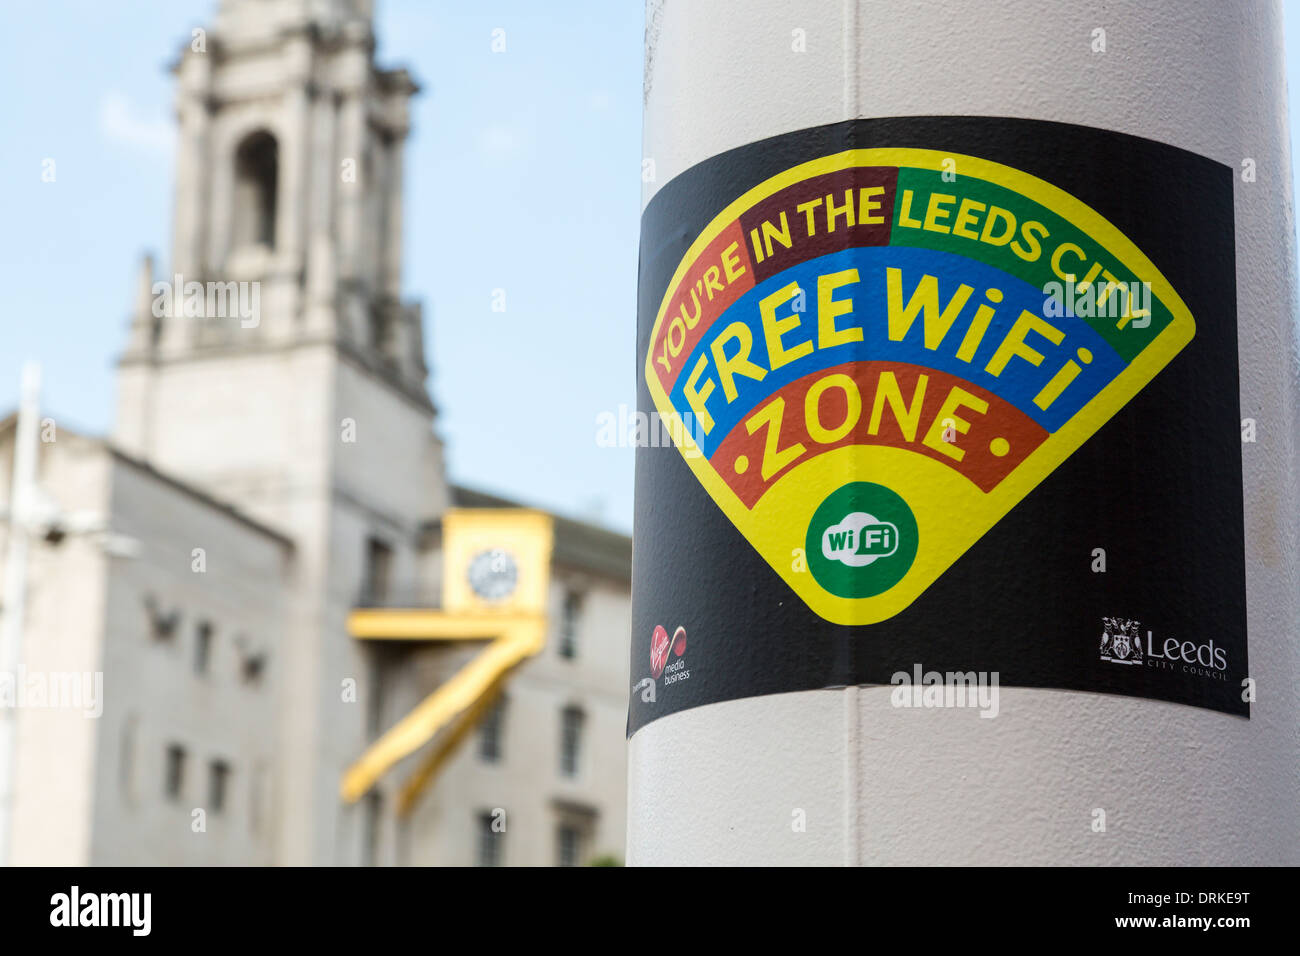 Connexion Wi-Fi gratuite signer avant de Civic Hall, Leeds, Angleterre Photo Stock